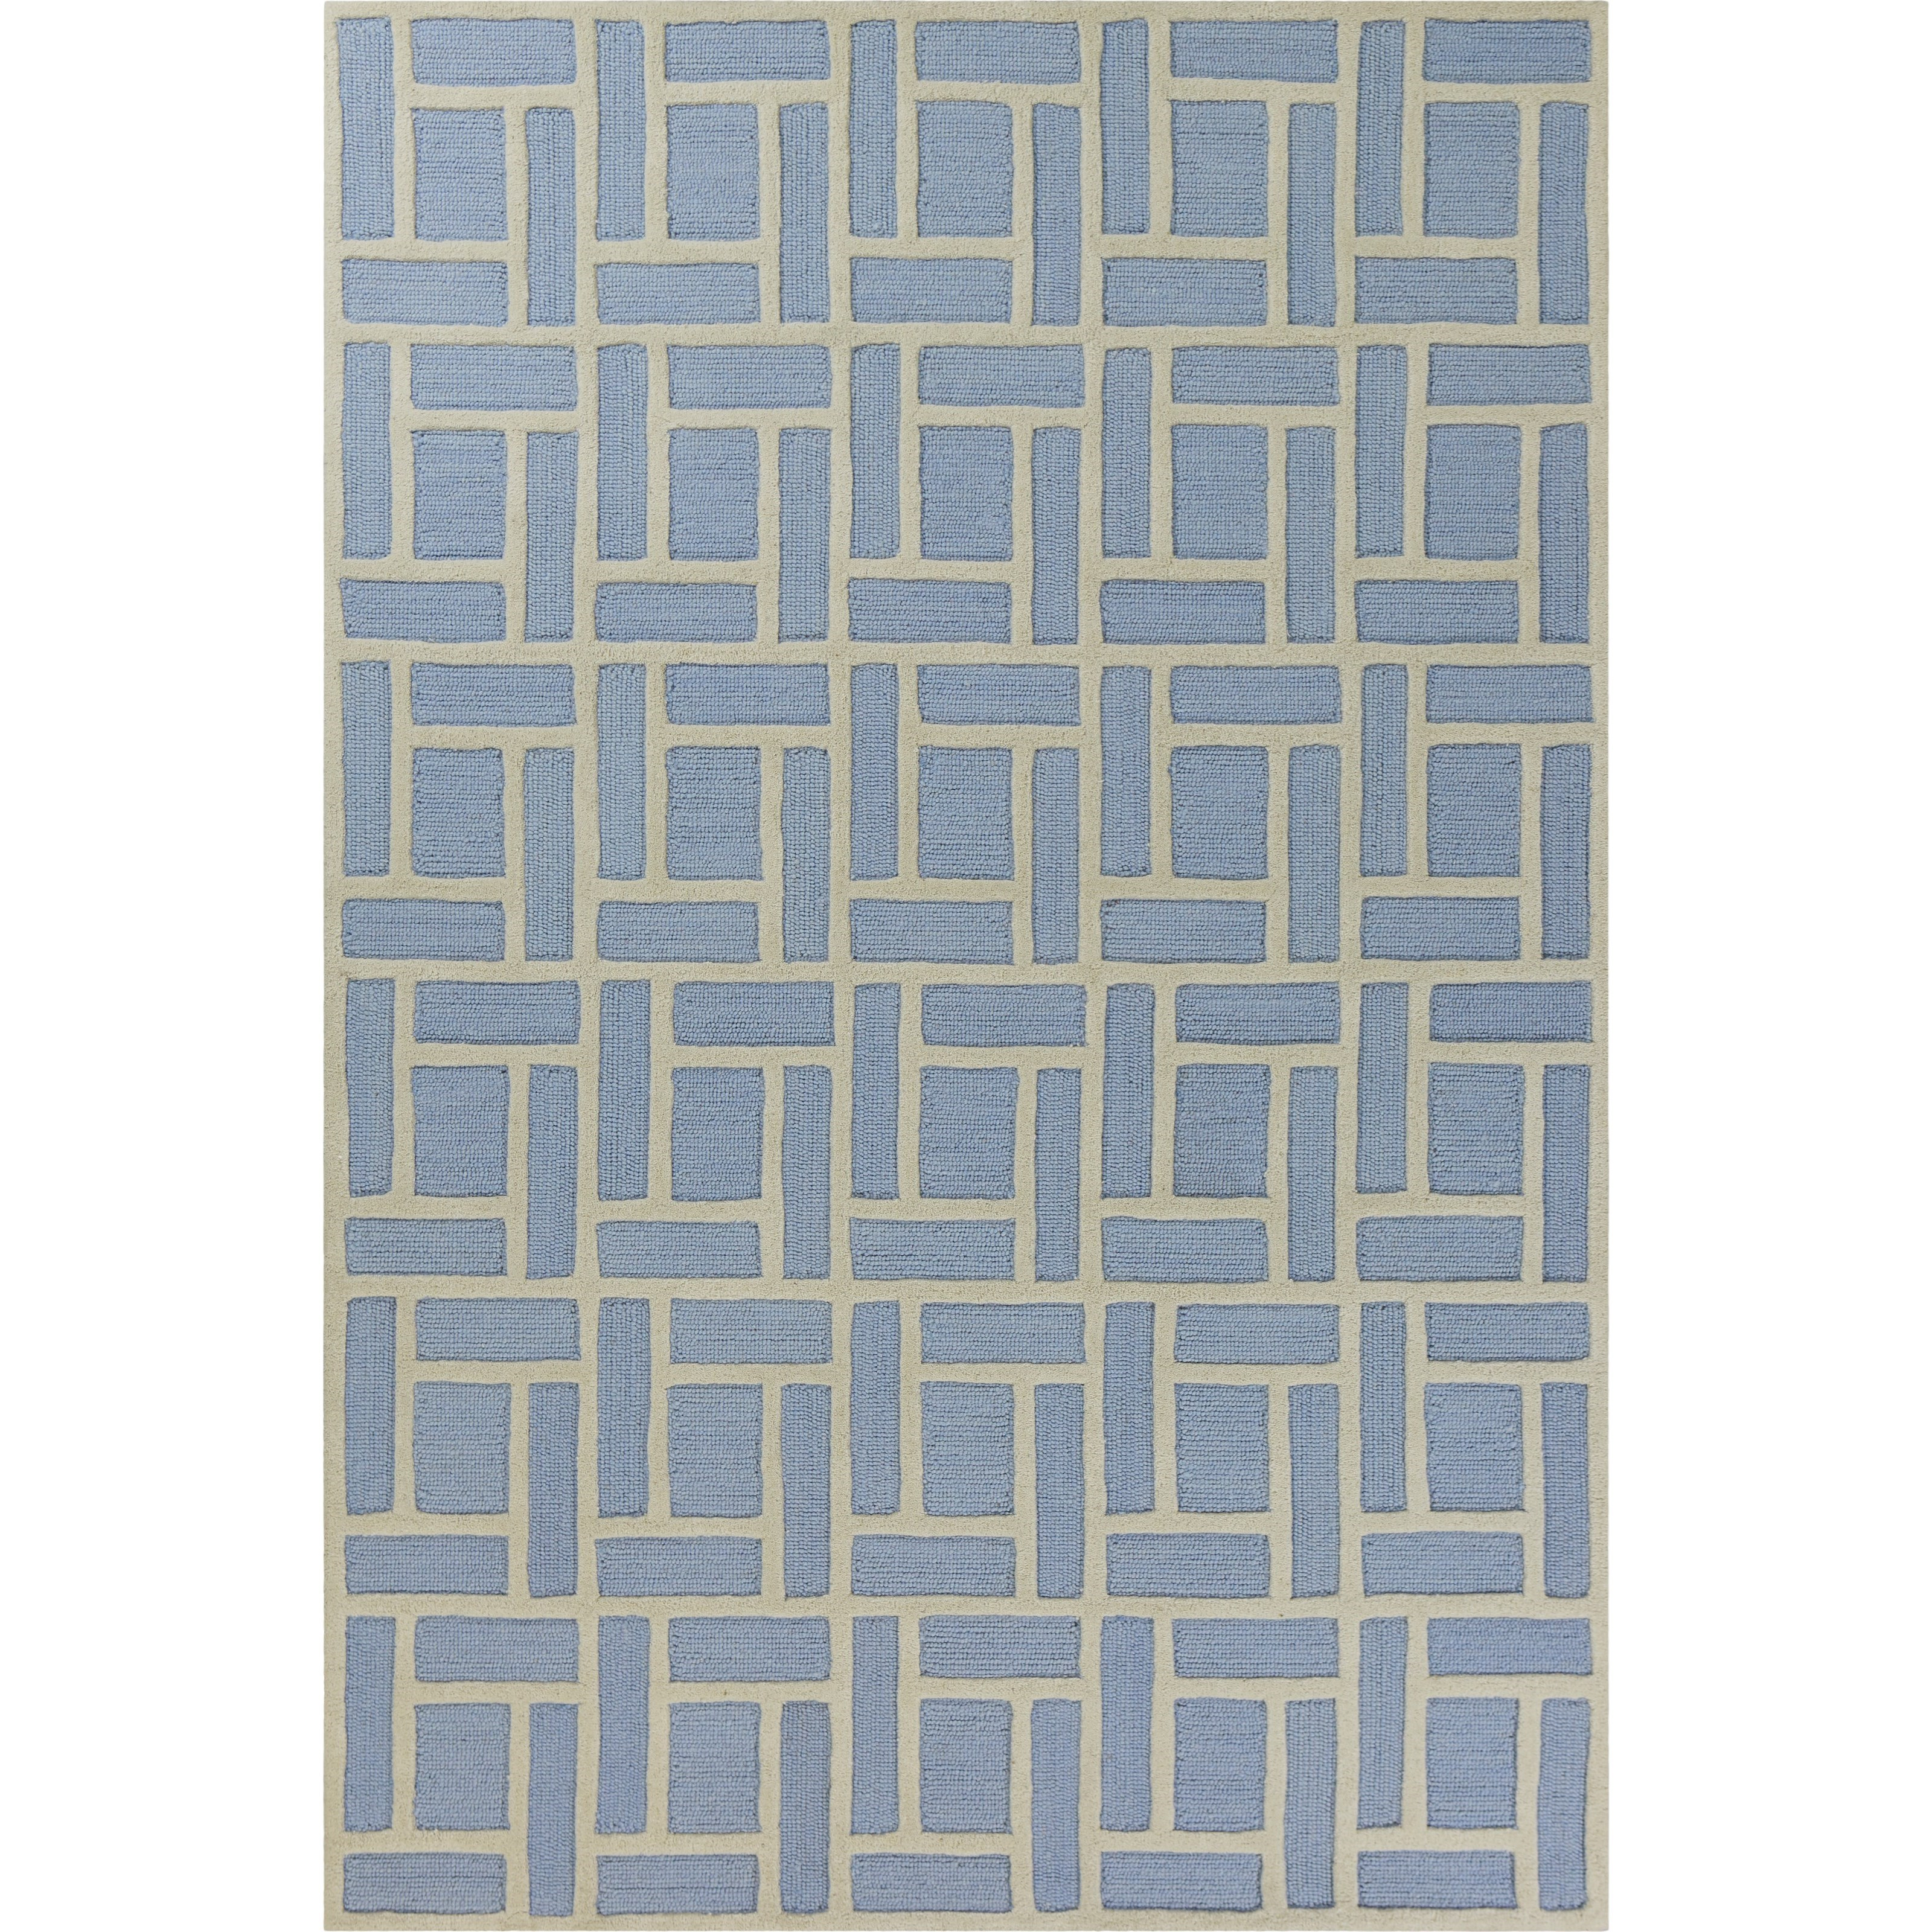 """Libby Langdon Soho 9'6"""" X 8'6"""" Area Rug by Kas at Zak's Home"""